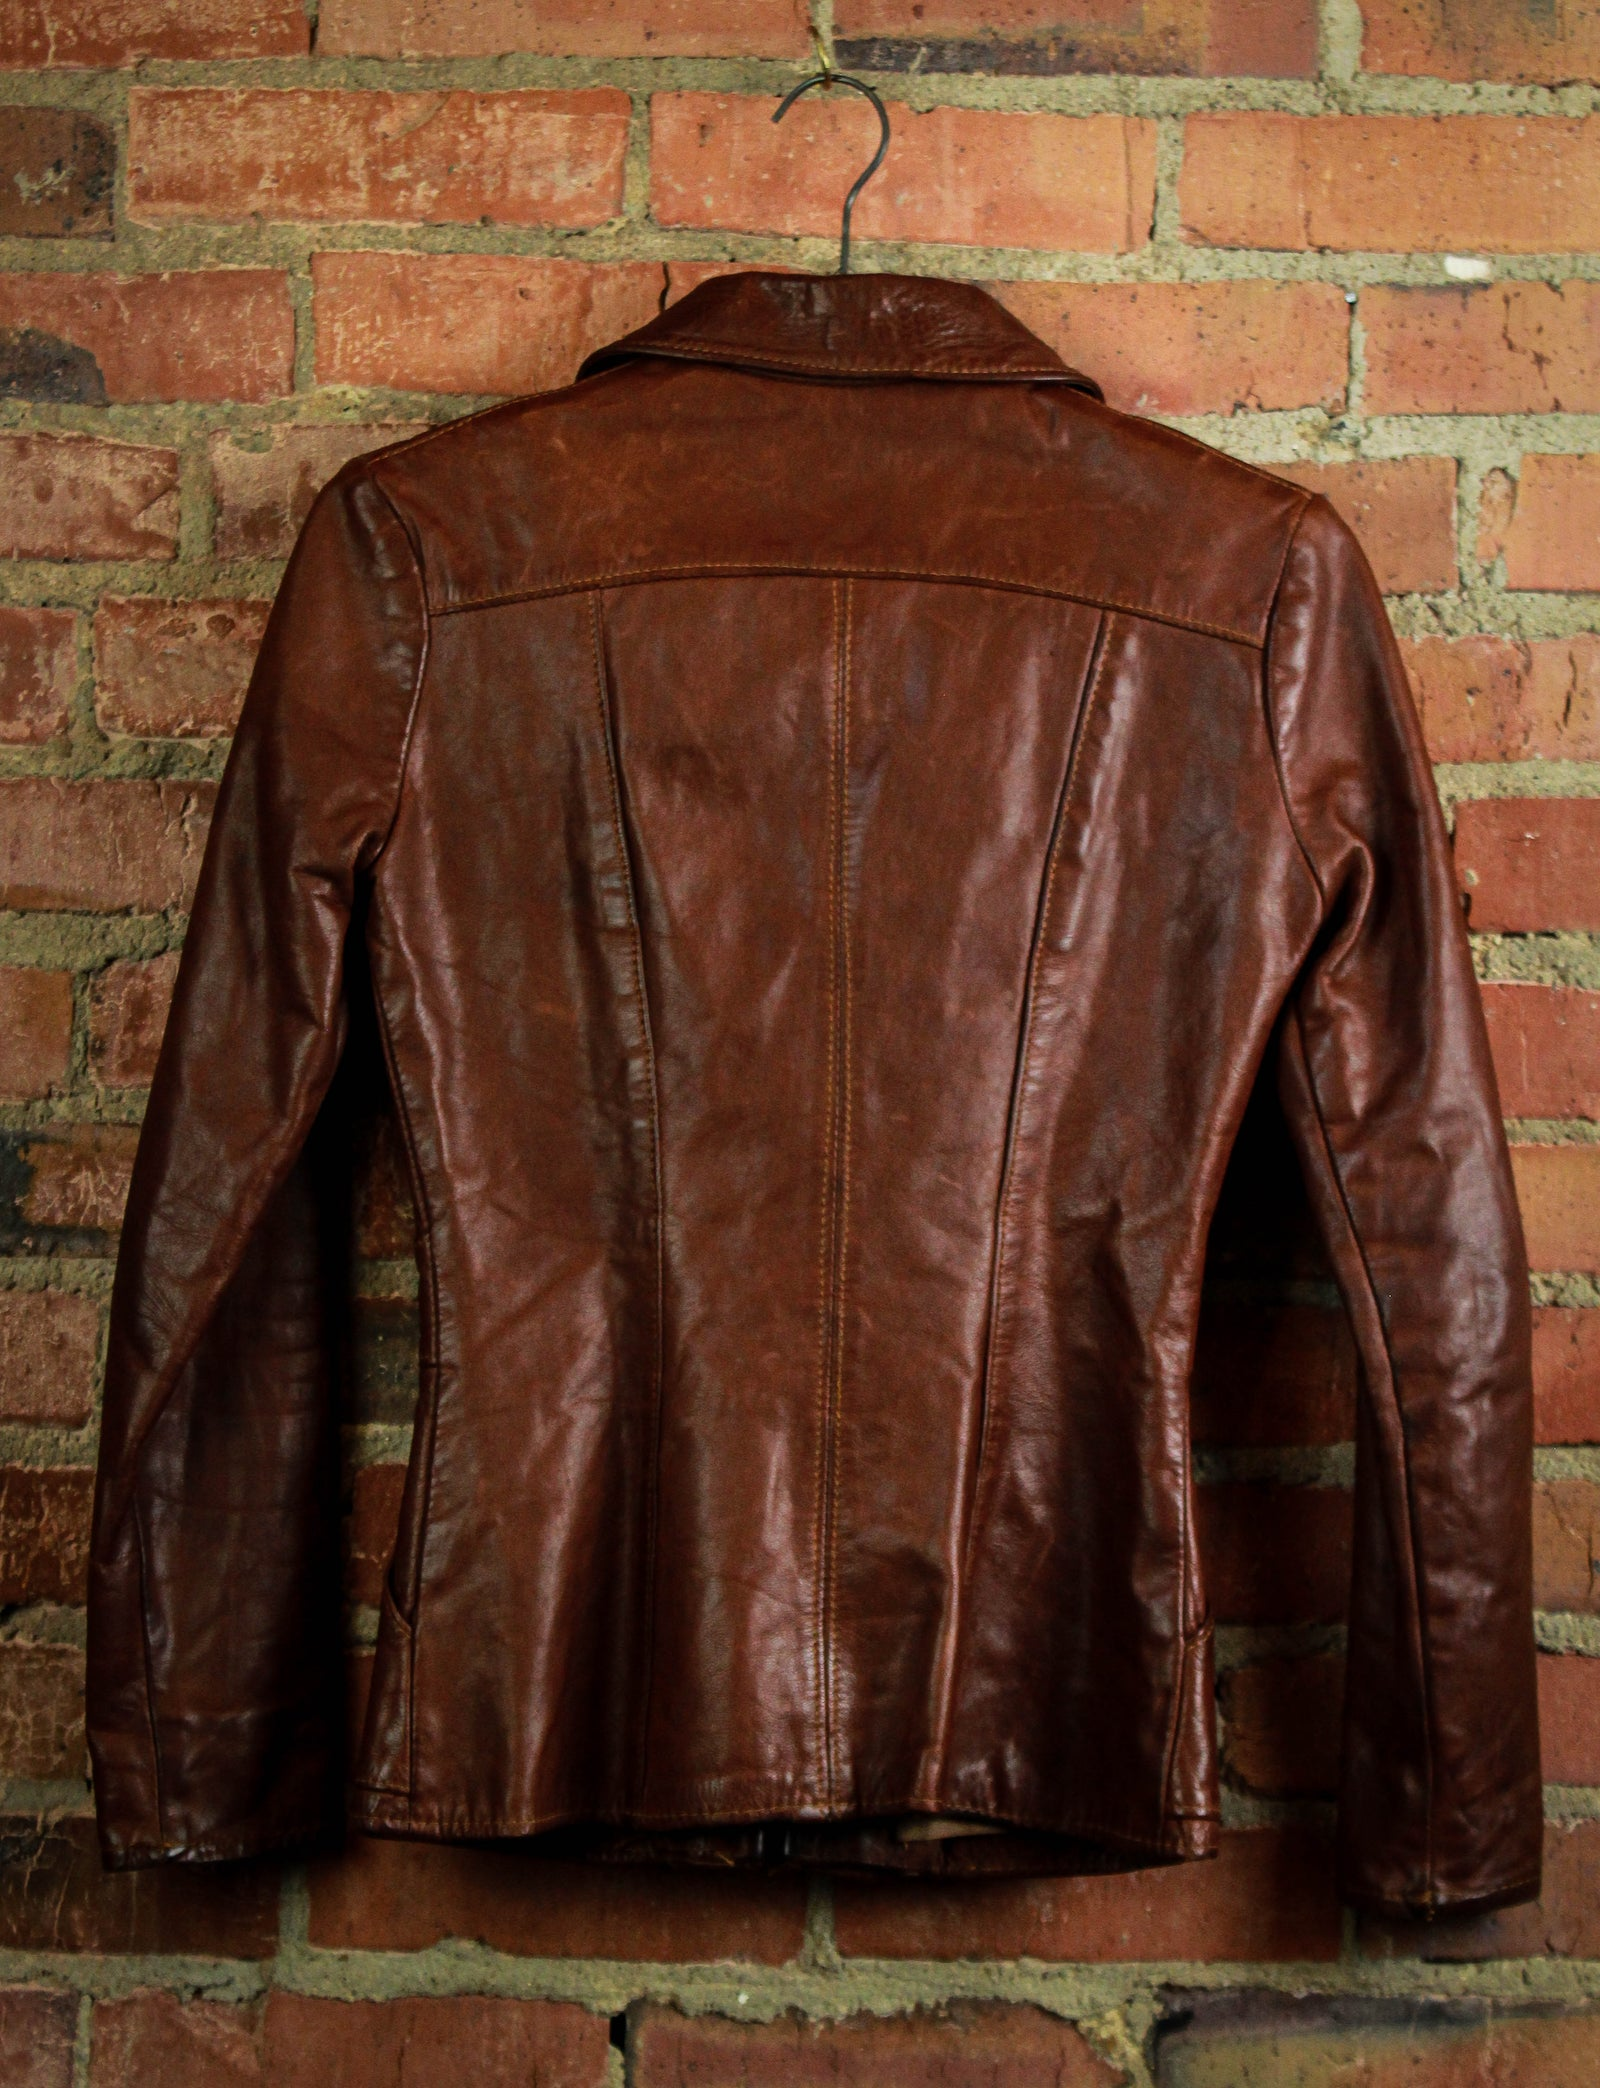 Vintage Natural Comfort Leather Jacket Women's 1970s Small